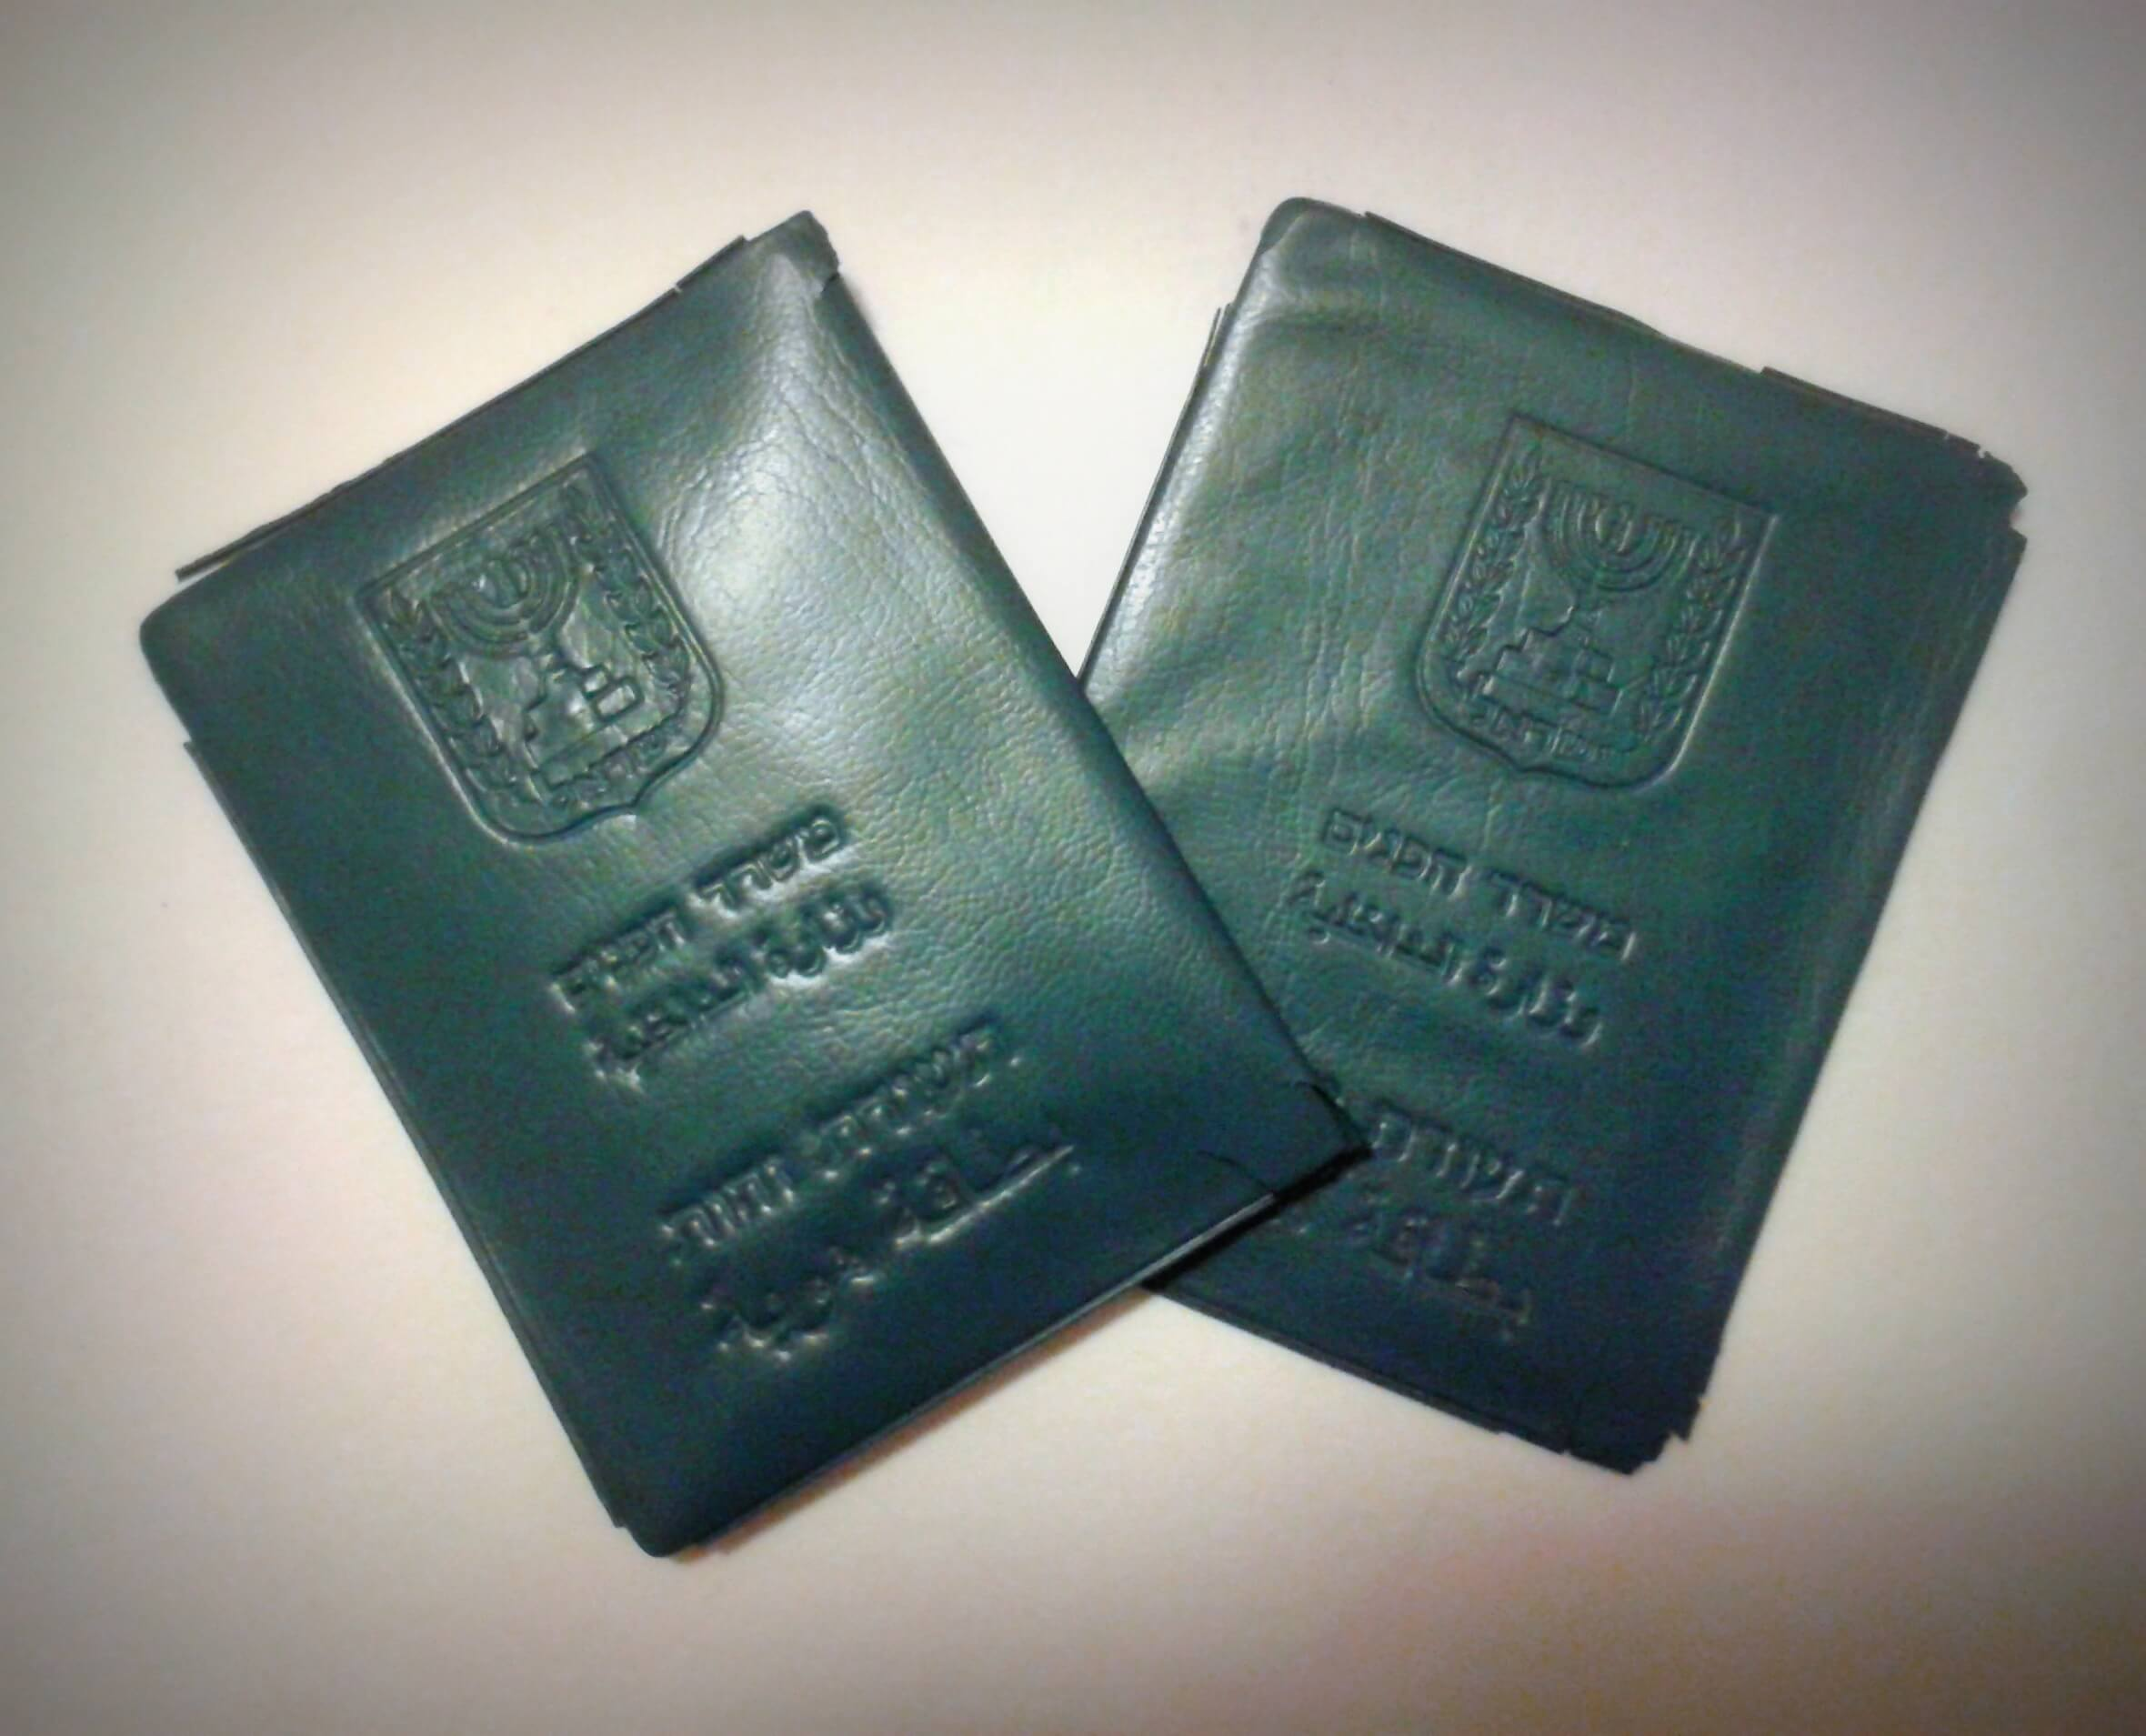 Israeli Permanent Residence Cancellation - A Permanent Resident holds an Identity Card but not a Passport